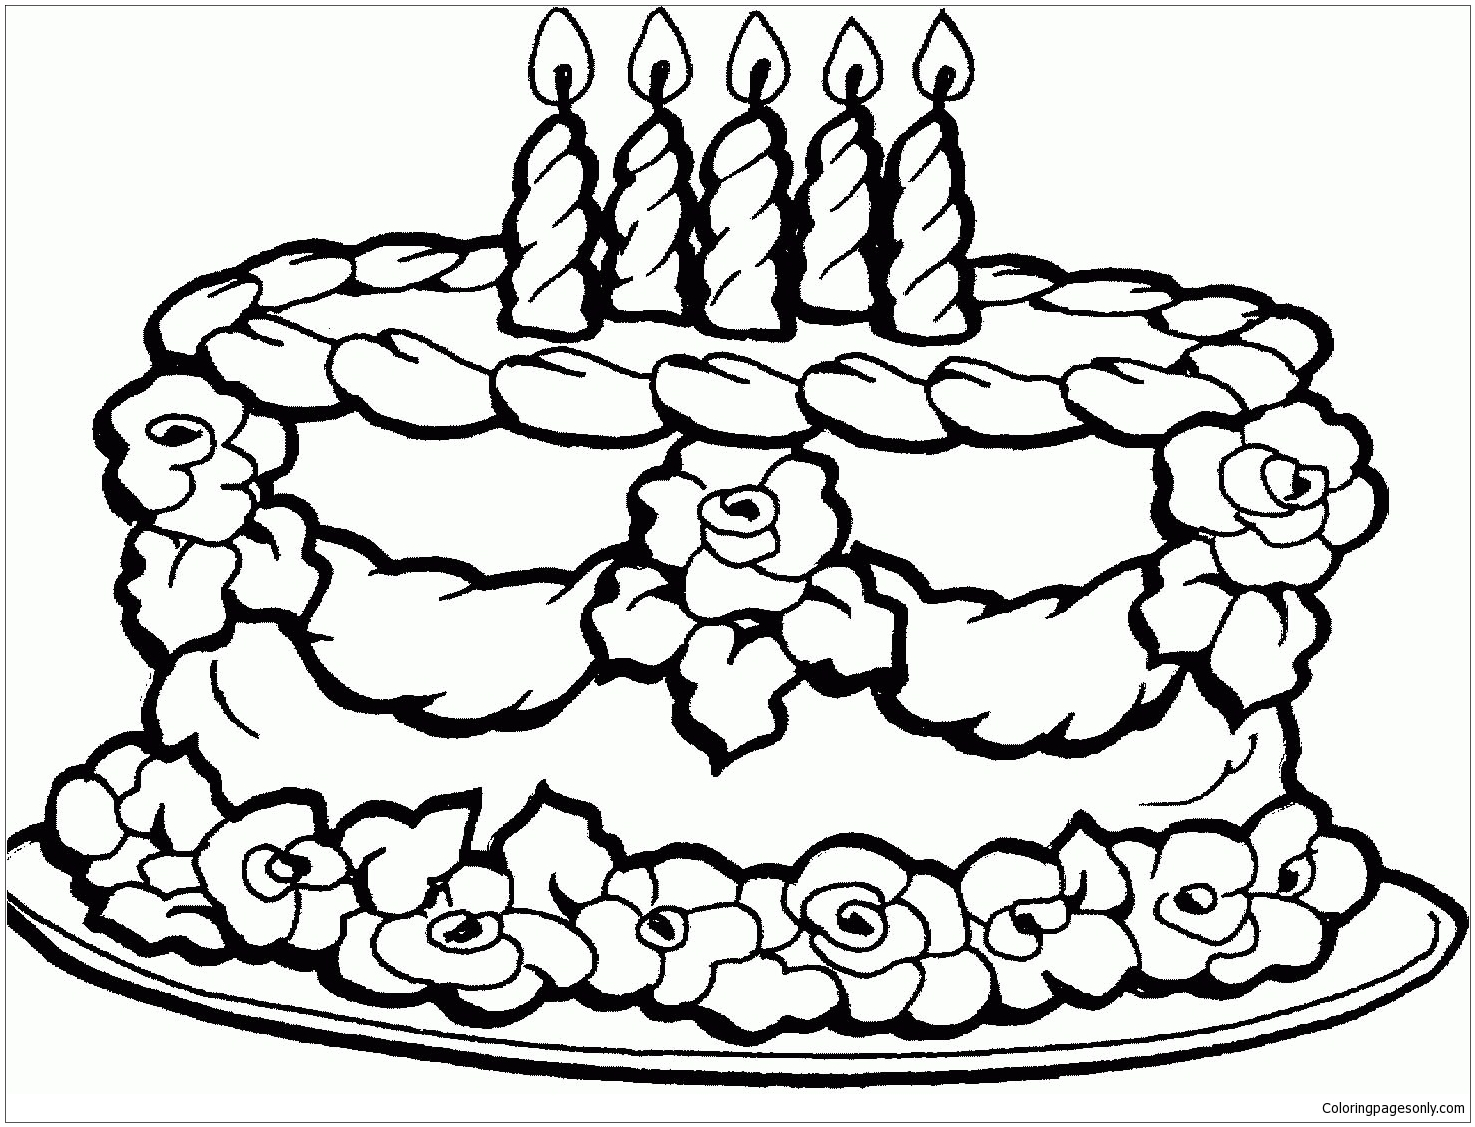 Birthday Cake 1 Coloring Page - Free Coloring Pages Online